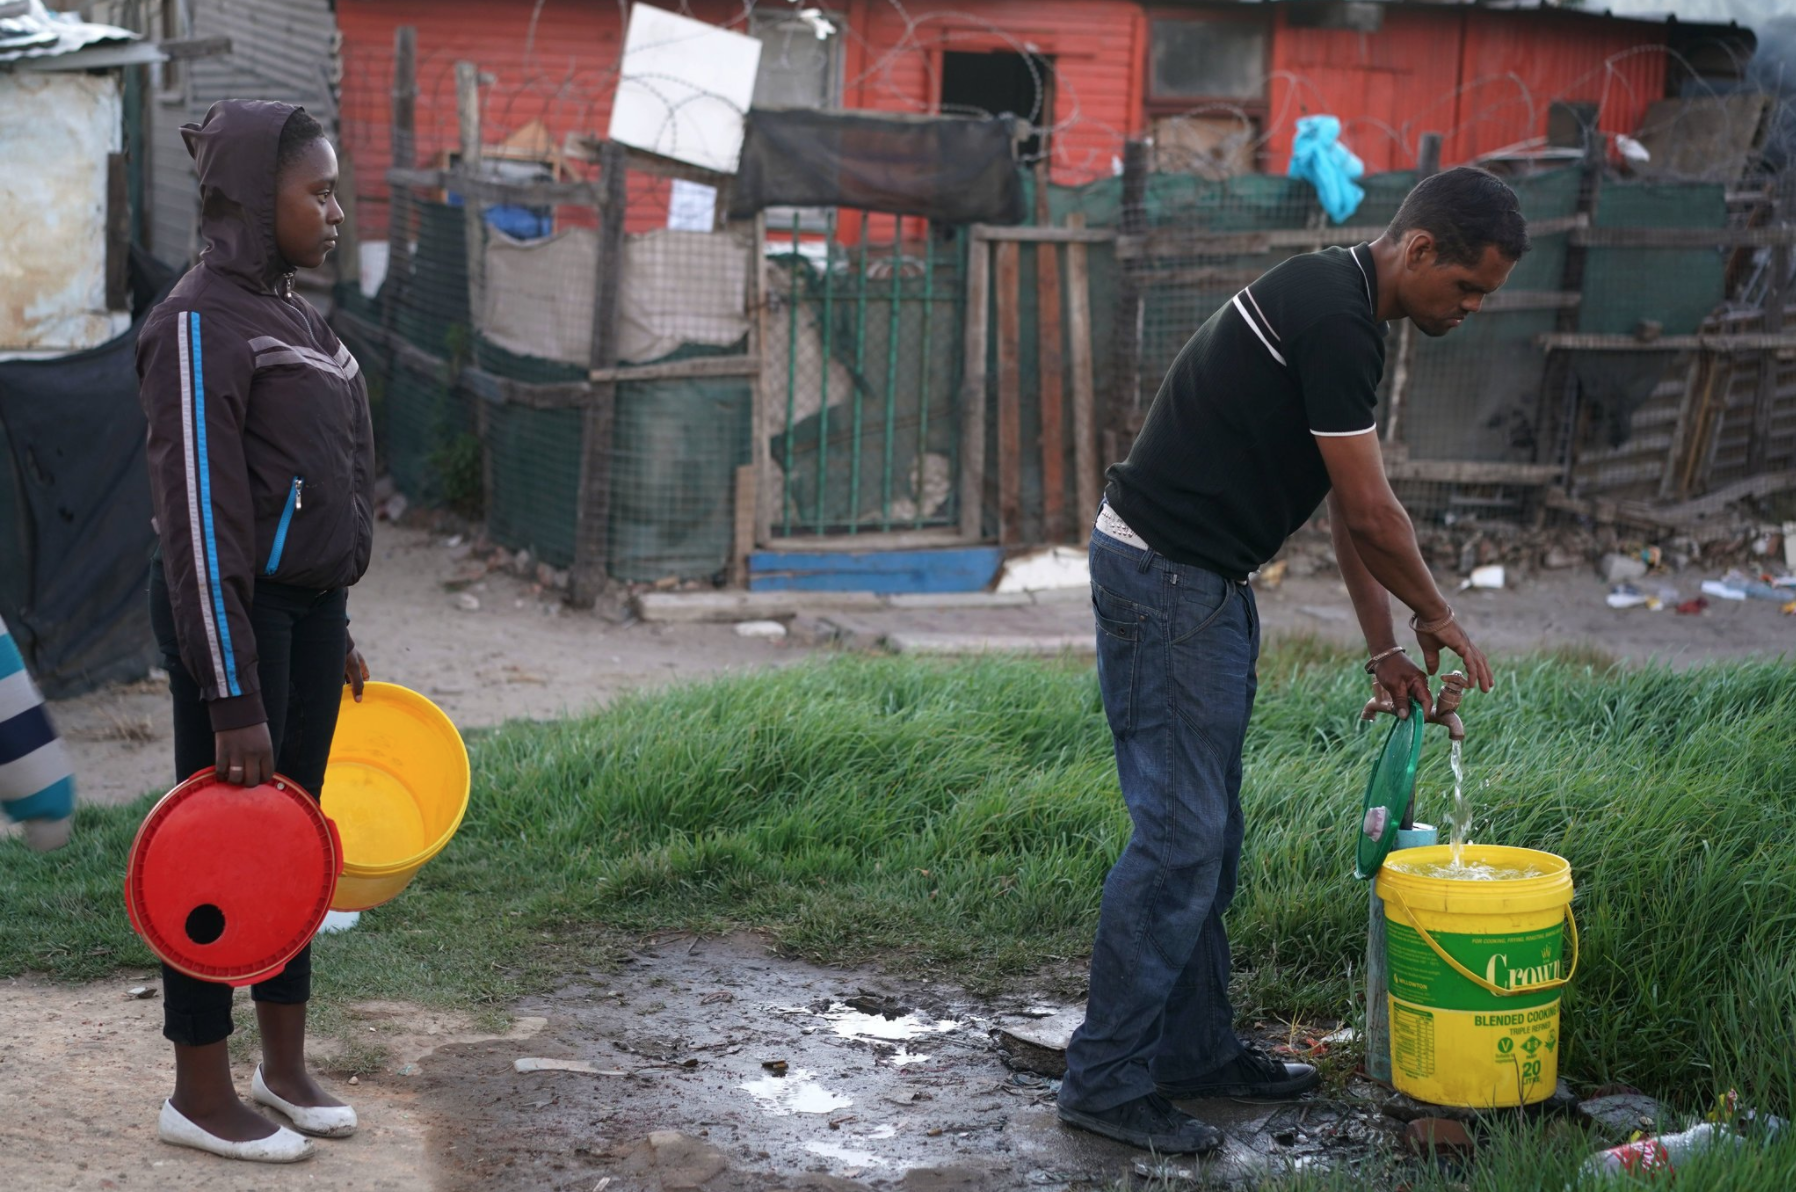 Residents getting water in South Africa